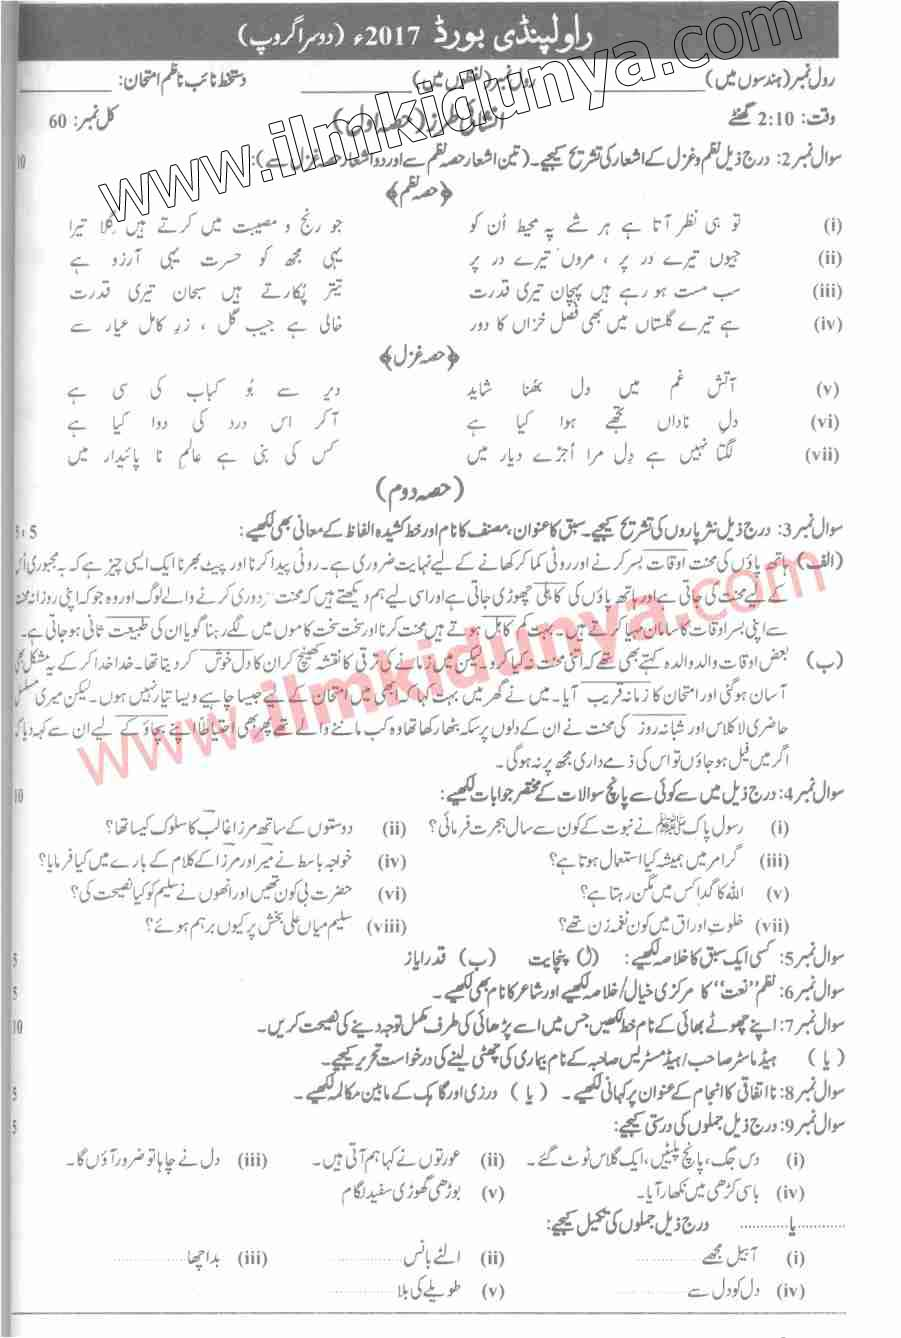 urdu essays in urdu for class 10 Yeah, urdu essays for class 10 is very incredible for you mar 23, 2013 - 4 minlog  in or sign up to add this lesson to a custom course 10th.